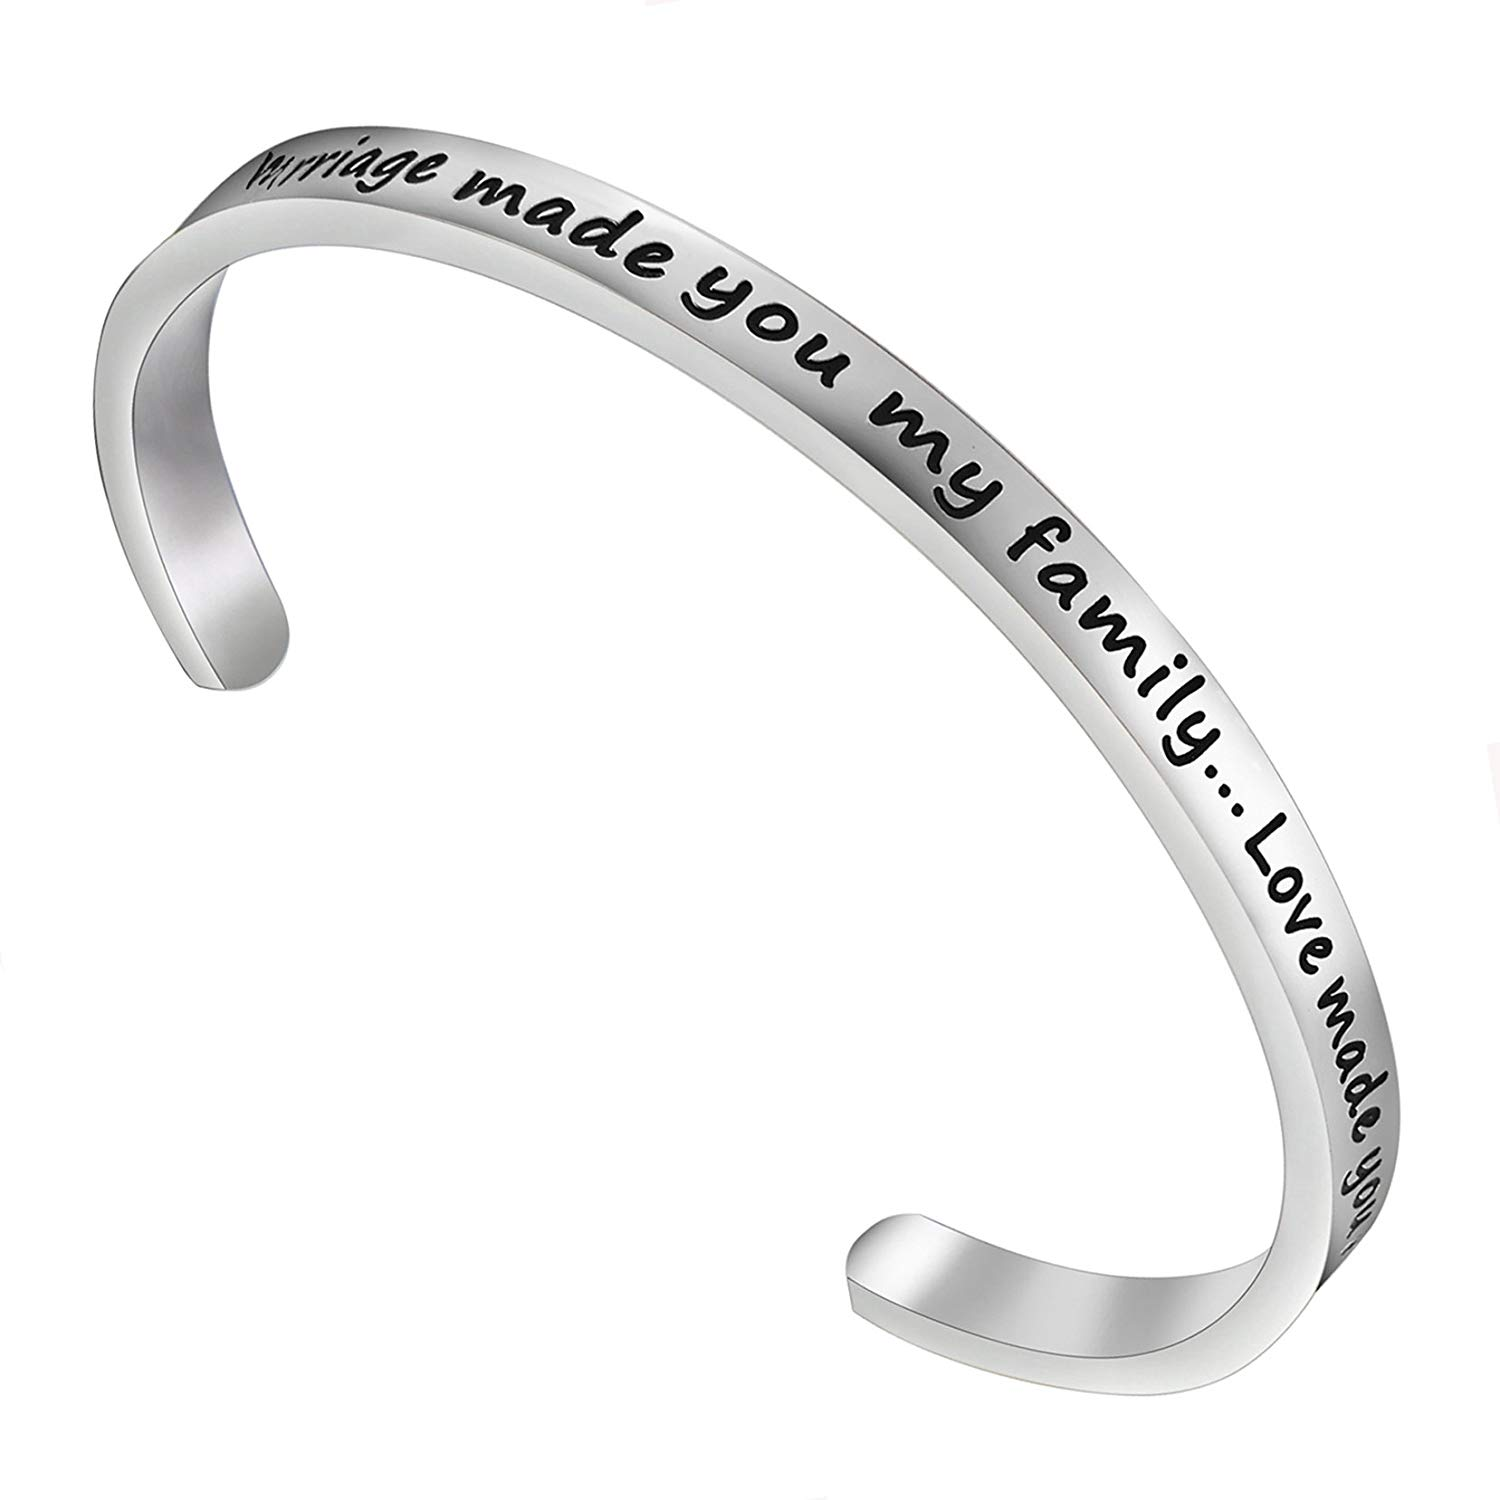 RQIER Step Daughter Gift Marriage Made You My Family Love Made You My Daughter Cuff Bracelet Gift for Stepdaughter Foster Adoption Family Jewelry